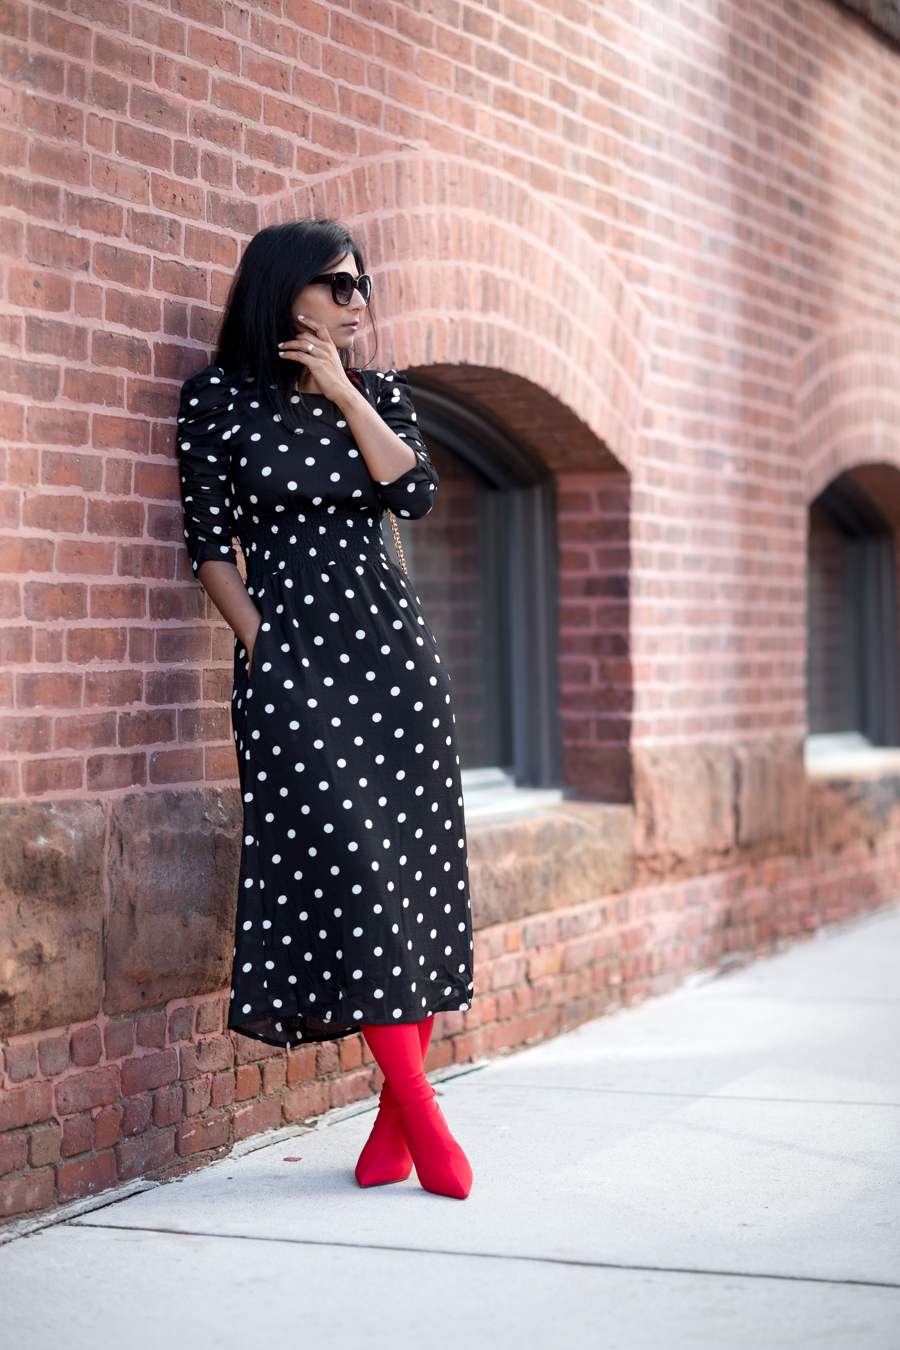 polka dots, sock boots, fall fashion trends, fall style, shopbop sale, petite blogger, petite fashion, affordable style, european style, mom style, fashion deals